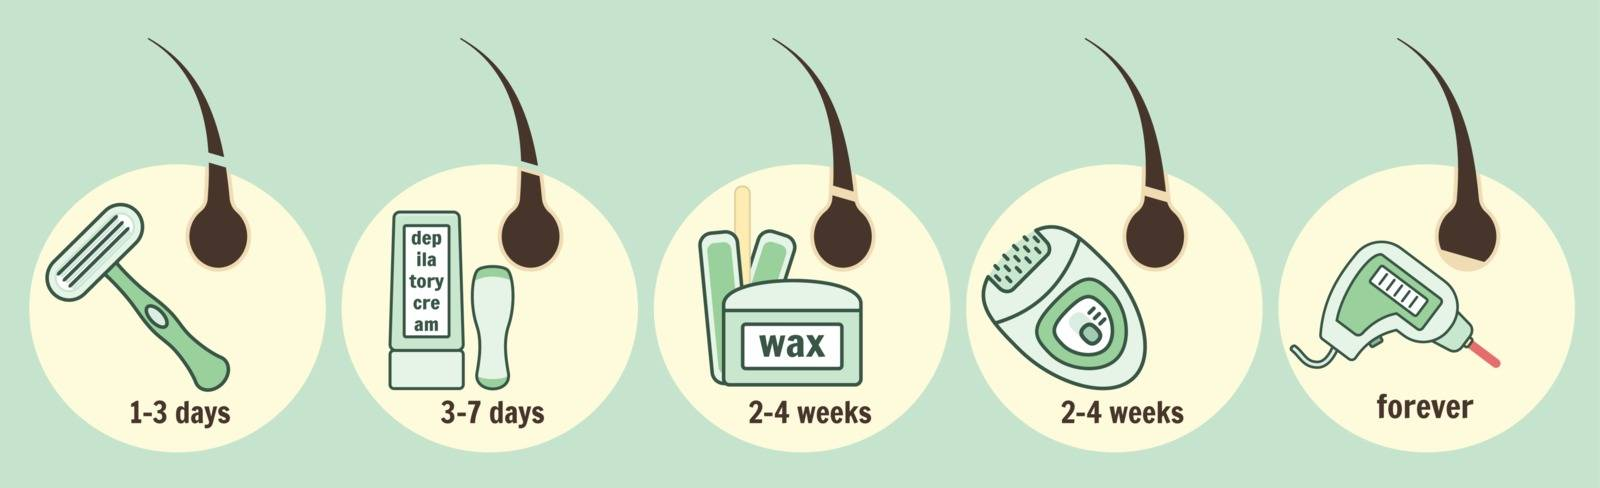 Hair removal methods and growth time infographic by tatahnka